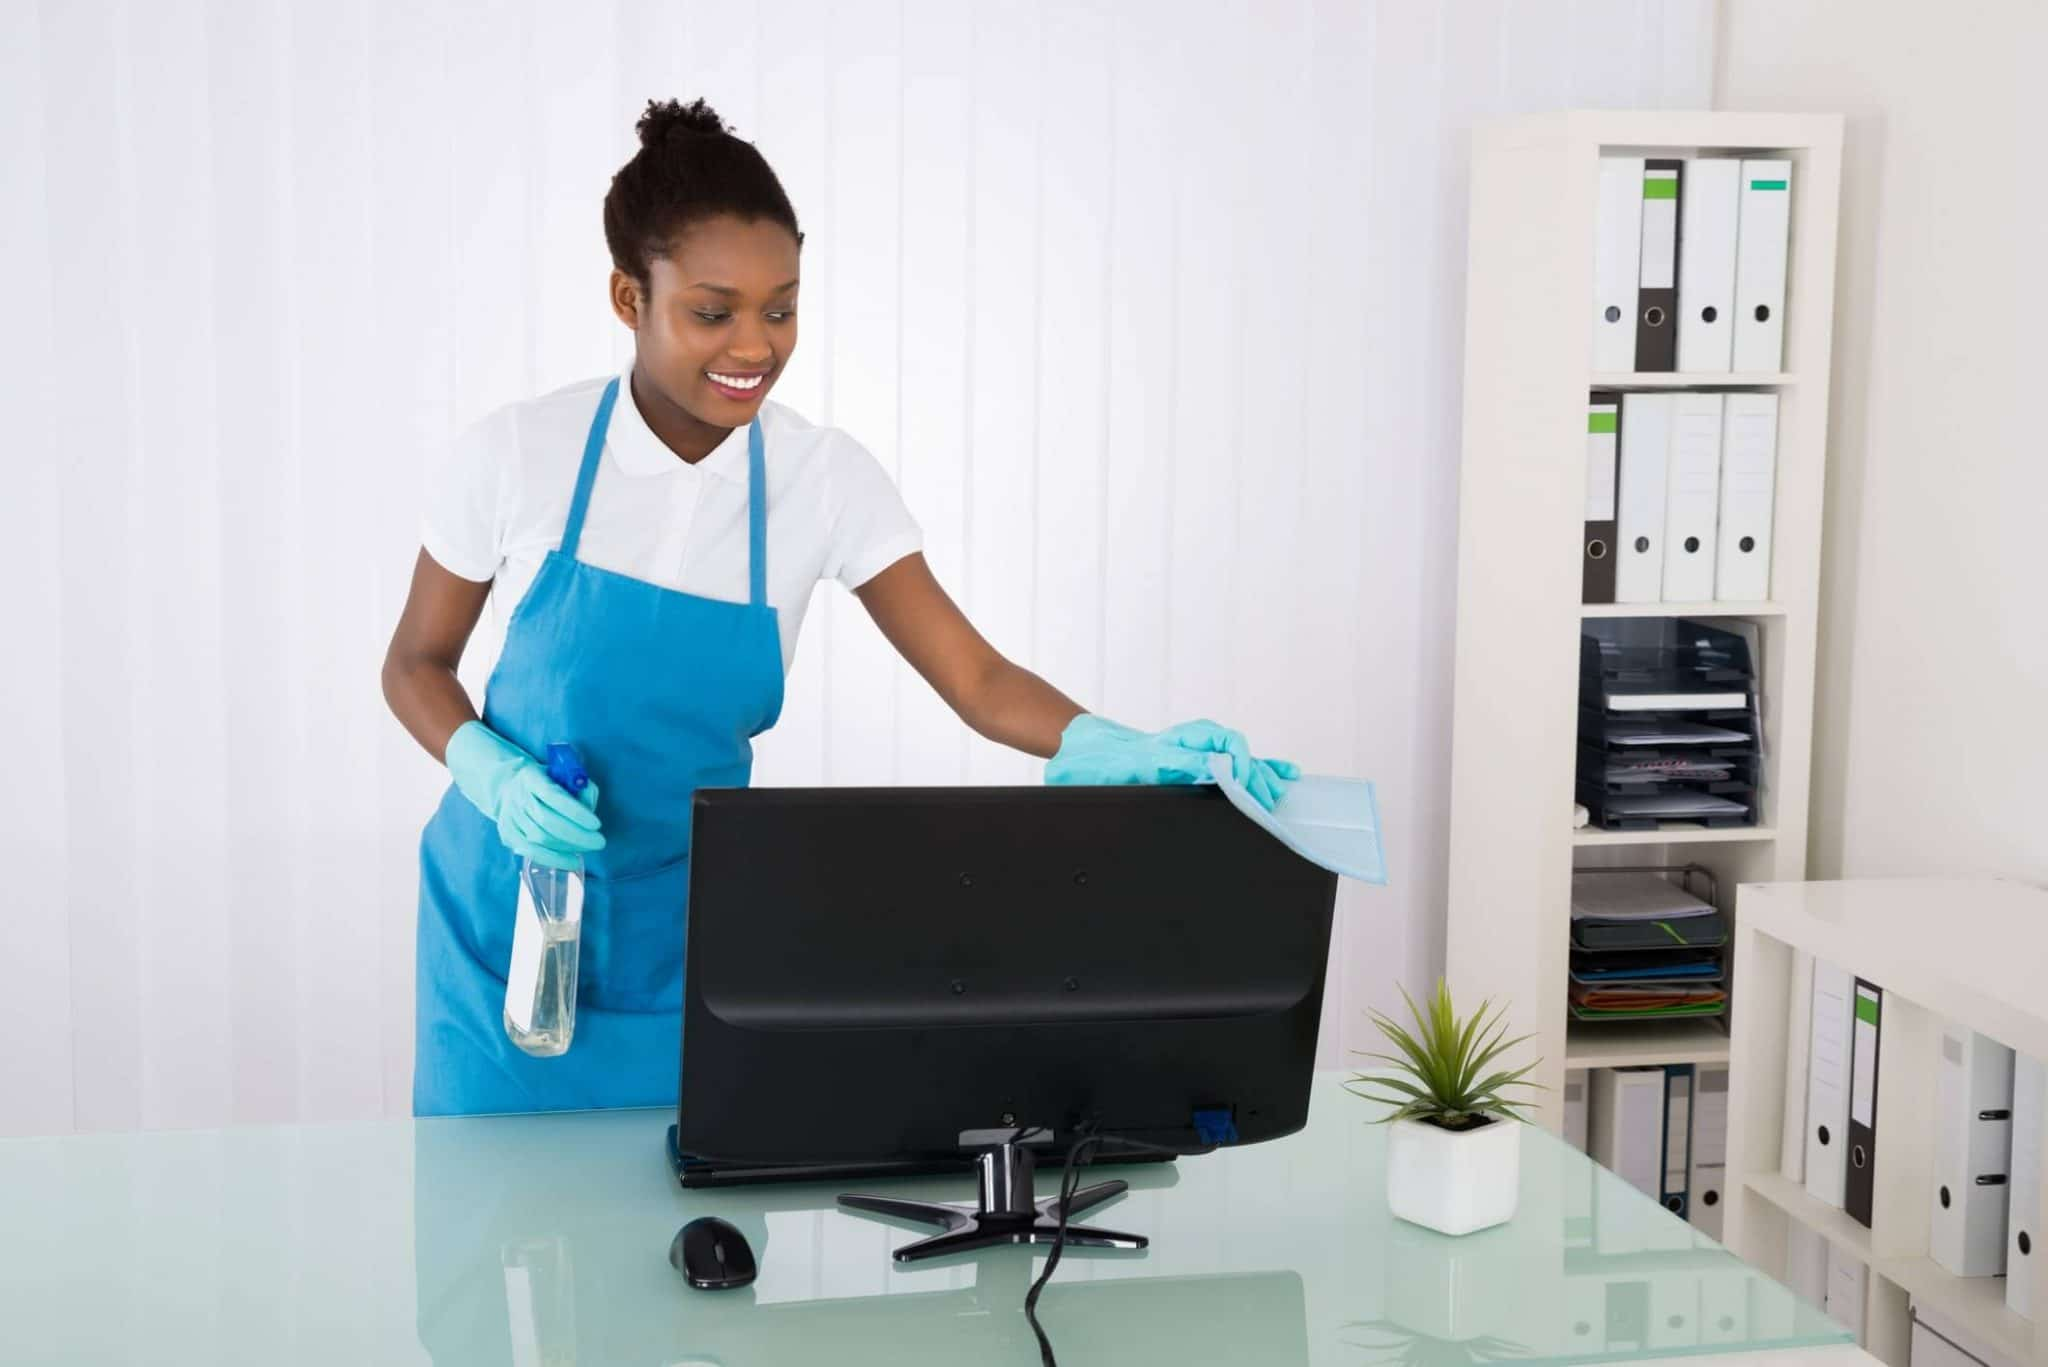 Happy Female Janitor Cleaning Computer With Rag In Office